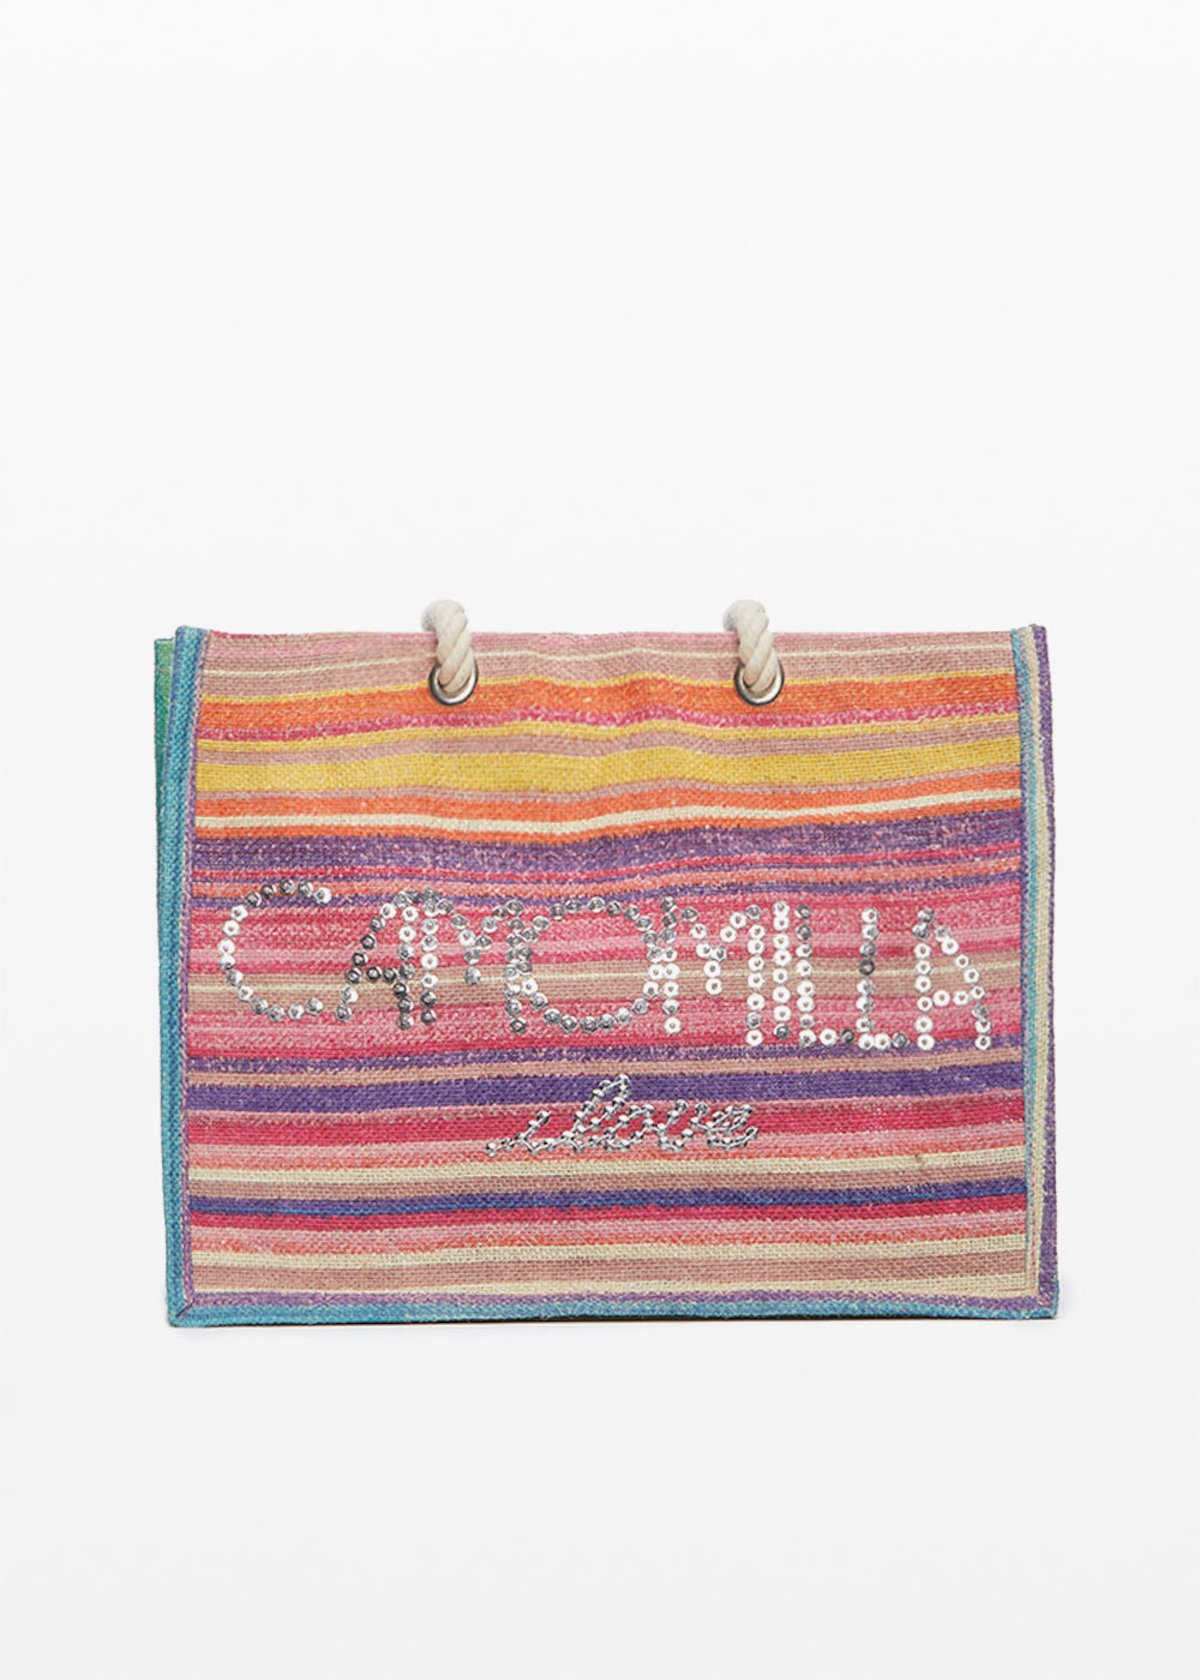 Blondy stripes print jute bag with Camomilla ilove logo in sequins - Hibiscus / Plant Stripes - Woman